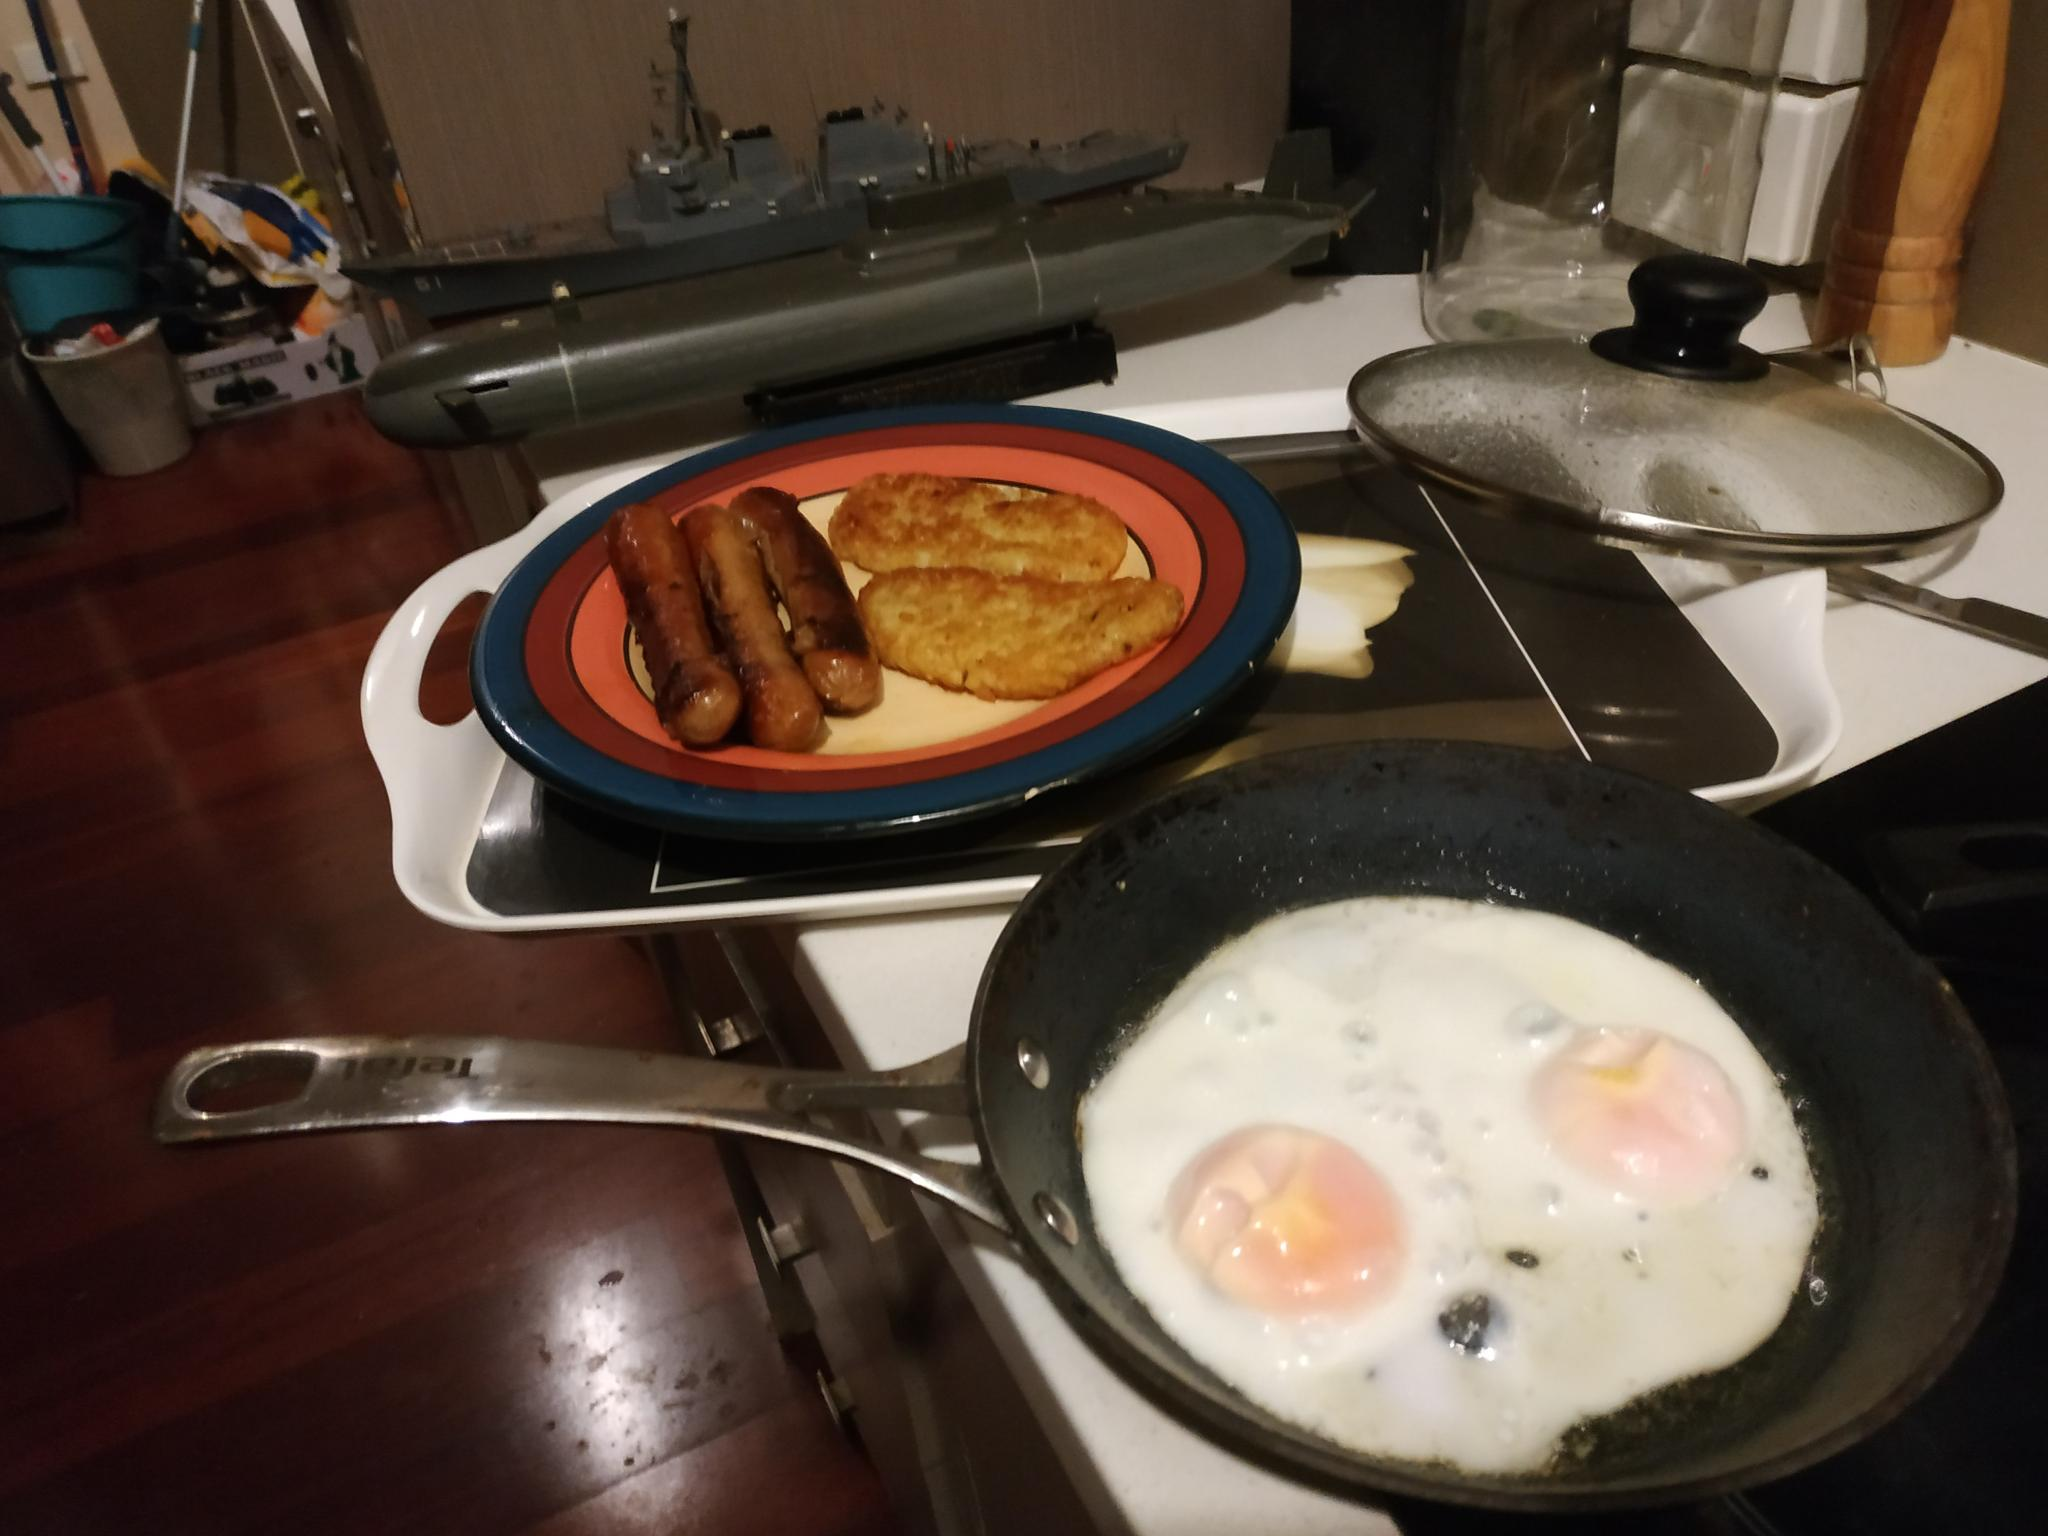 The Best Breakfast in the World Step by Step.: the Full English-img_20210429_204311-jpg